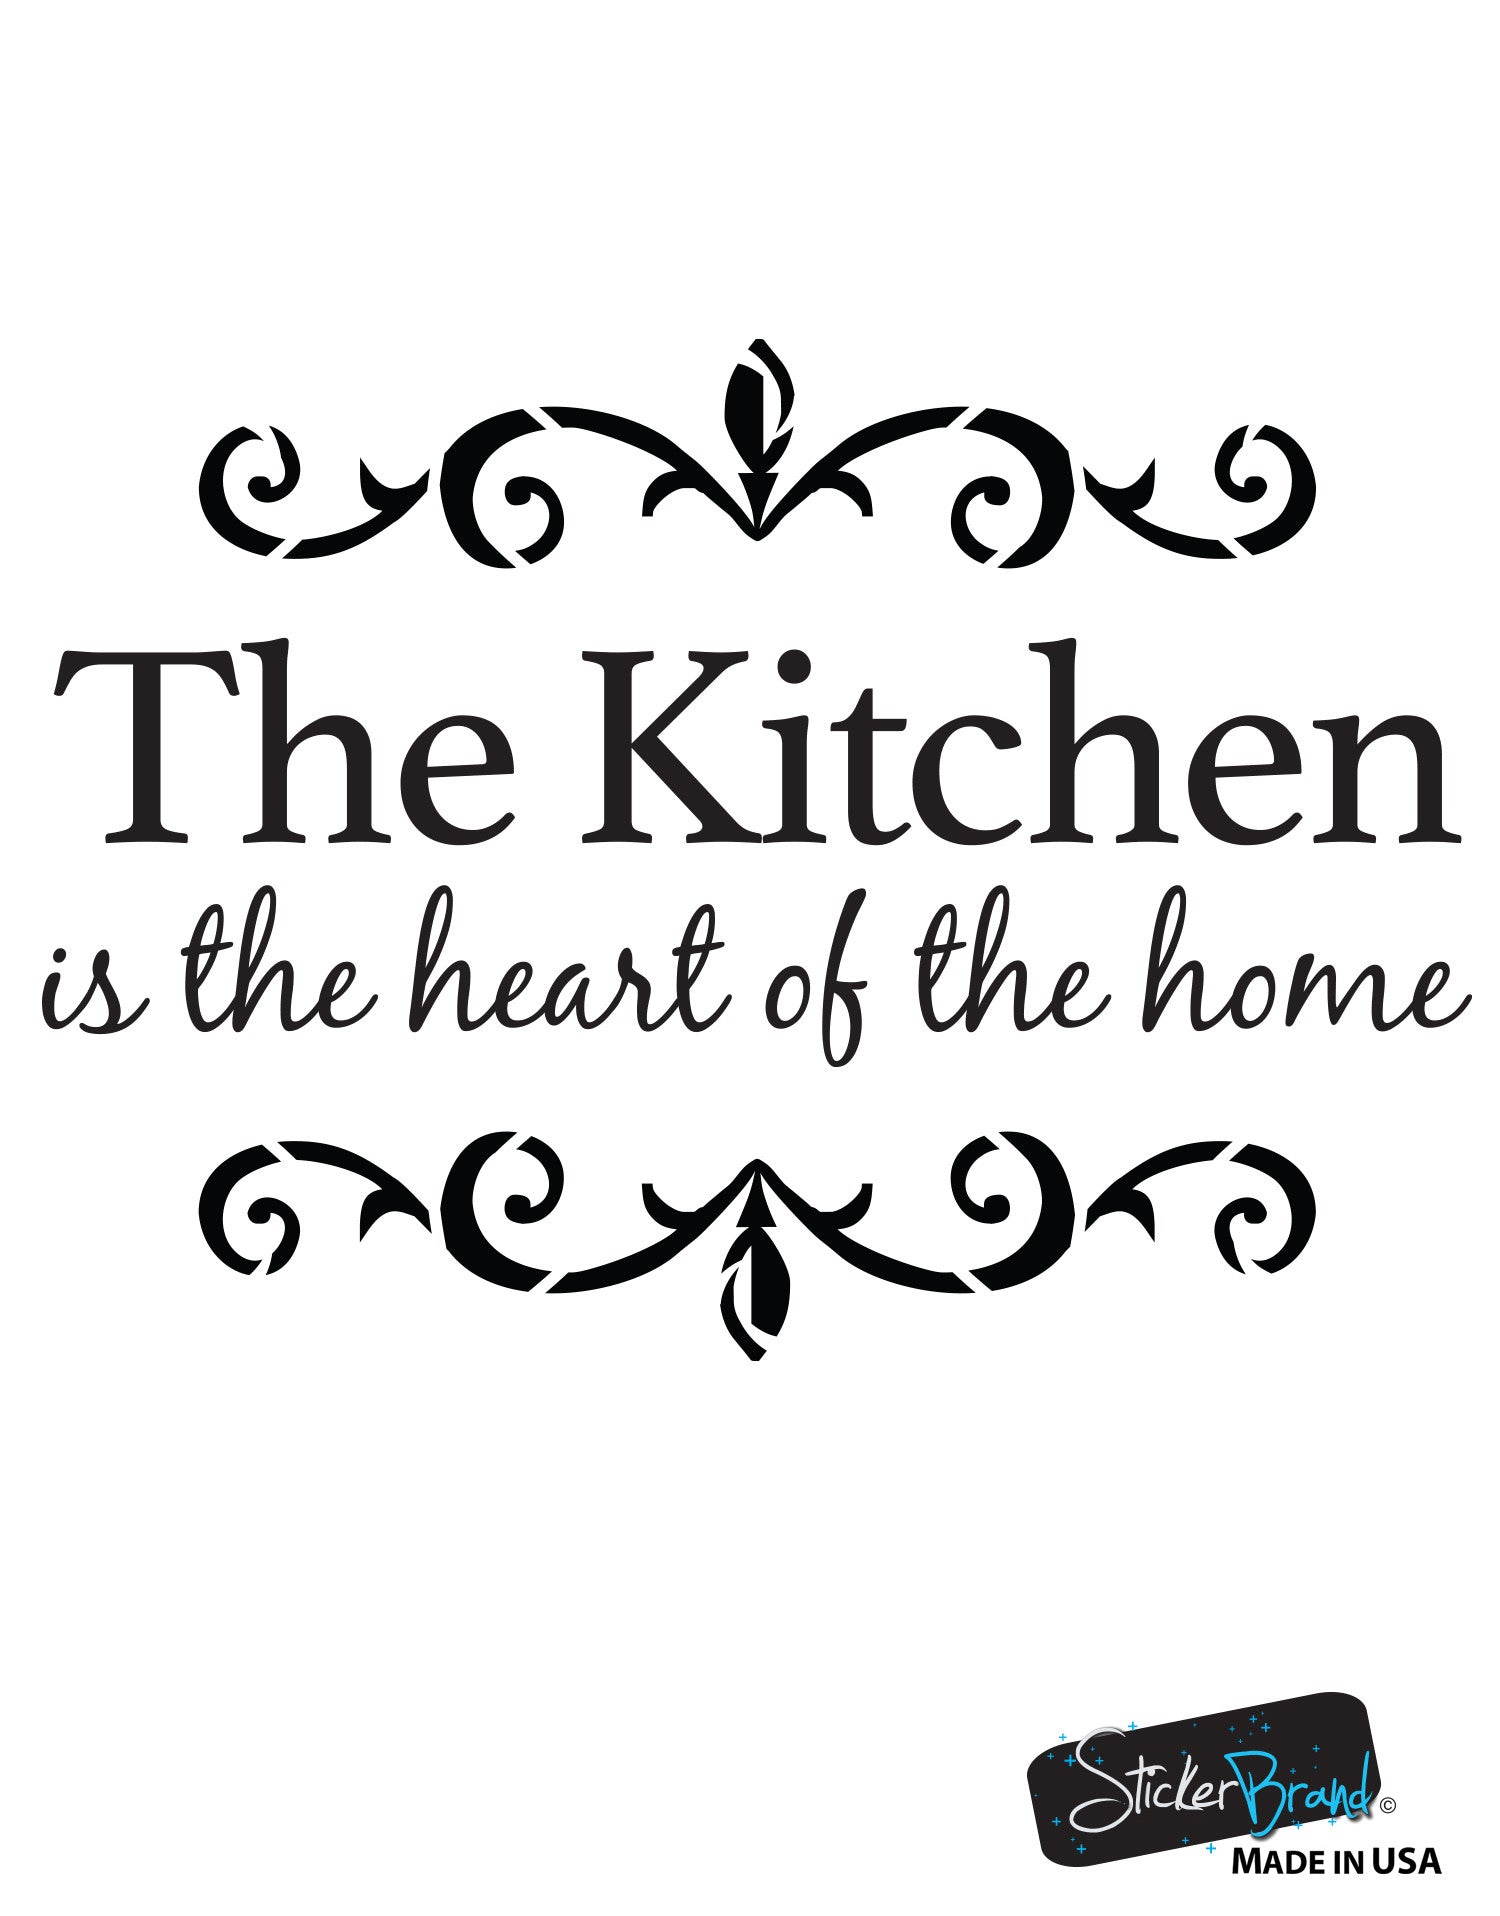 the kitchen is the heart of the home quote vinyl wall decal 6079. Black Bedroom Furniture Sets. Home Design Ideas